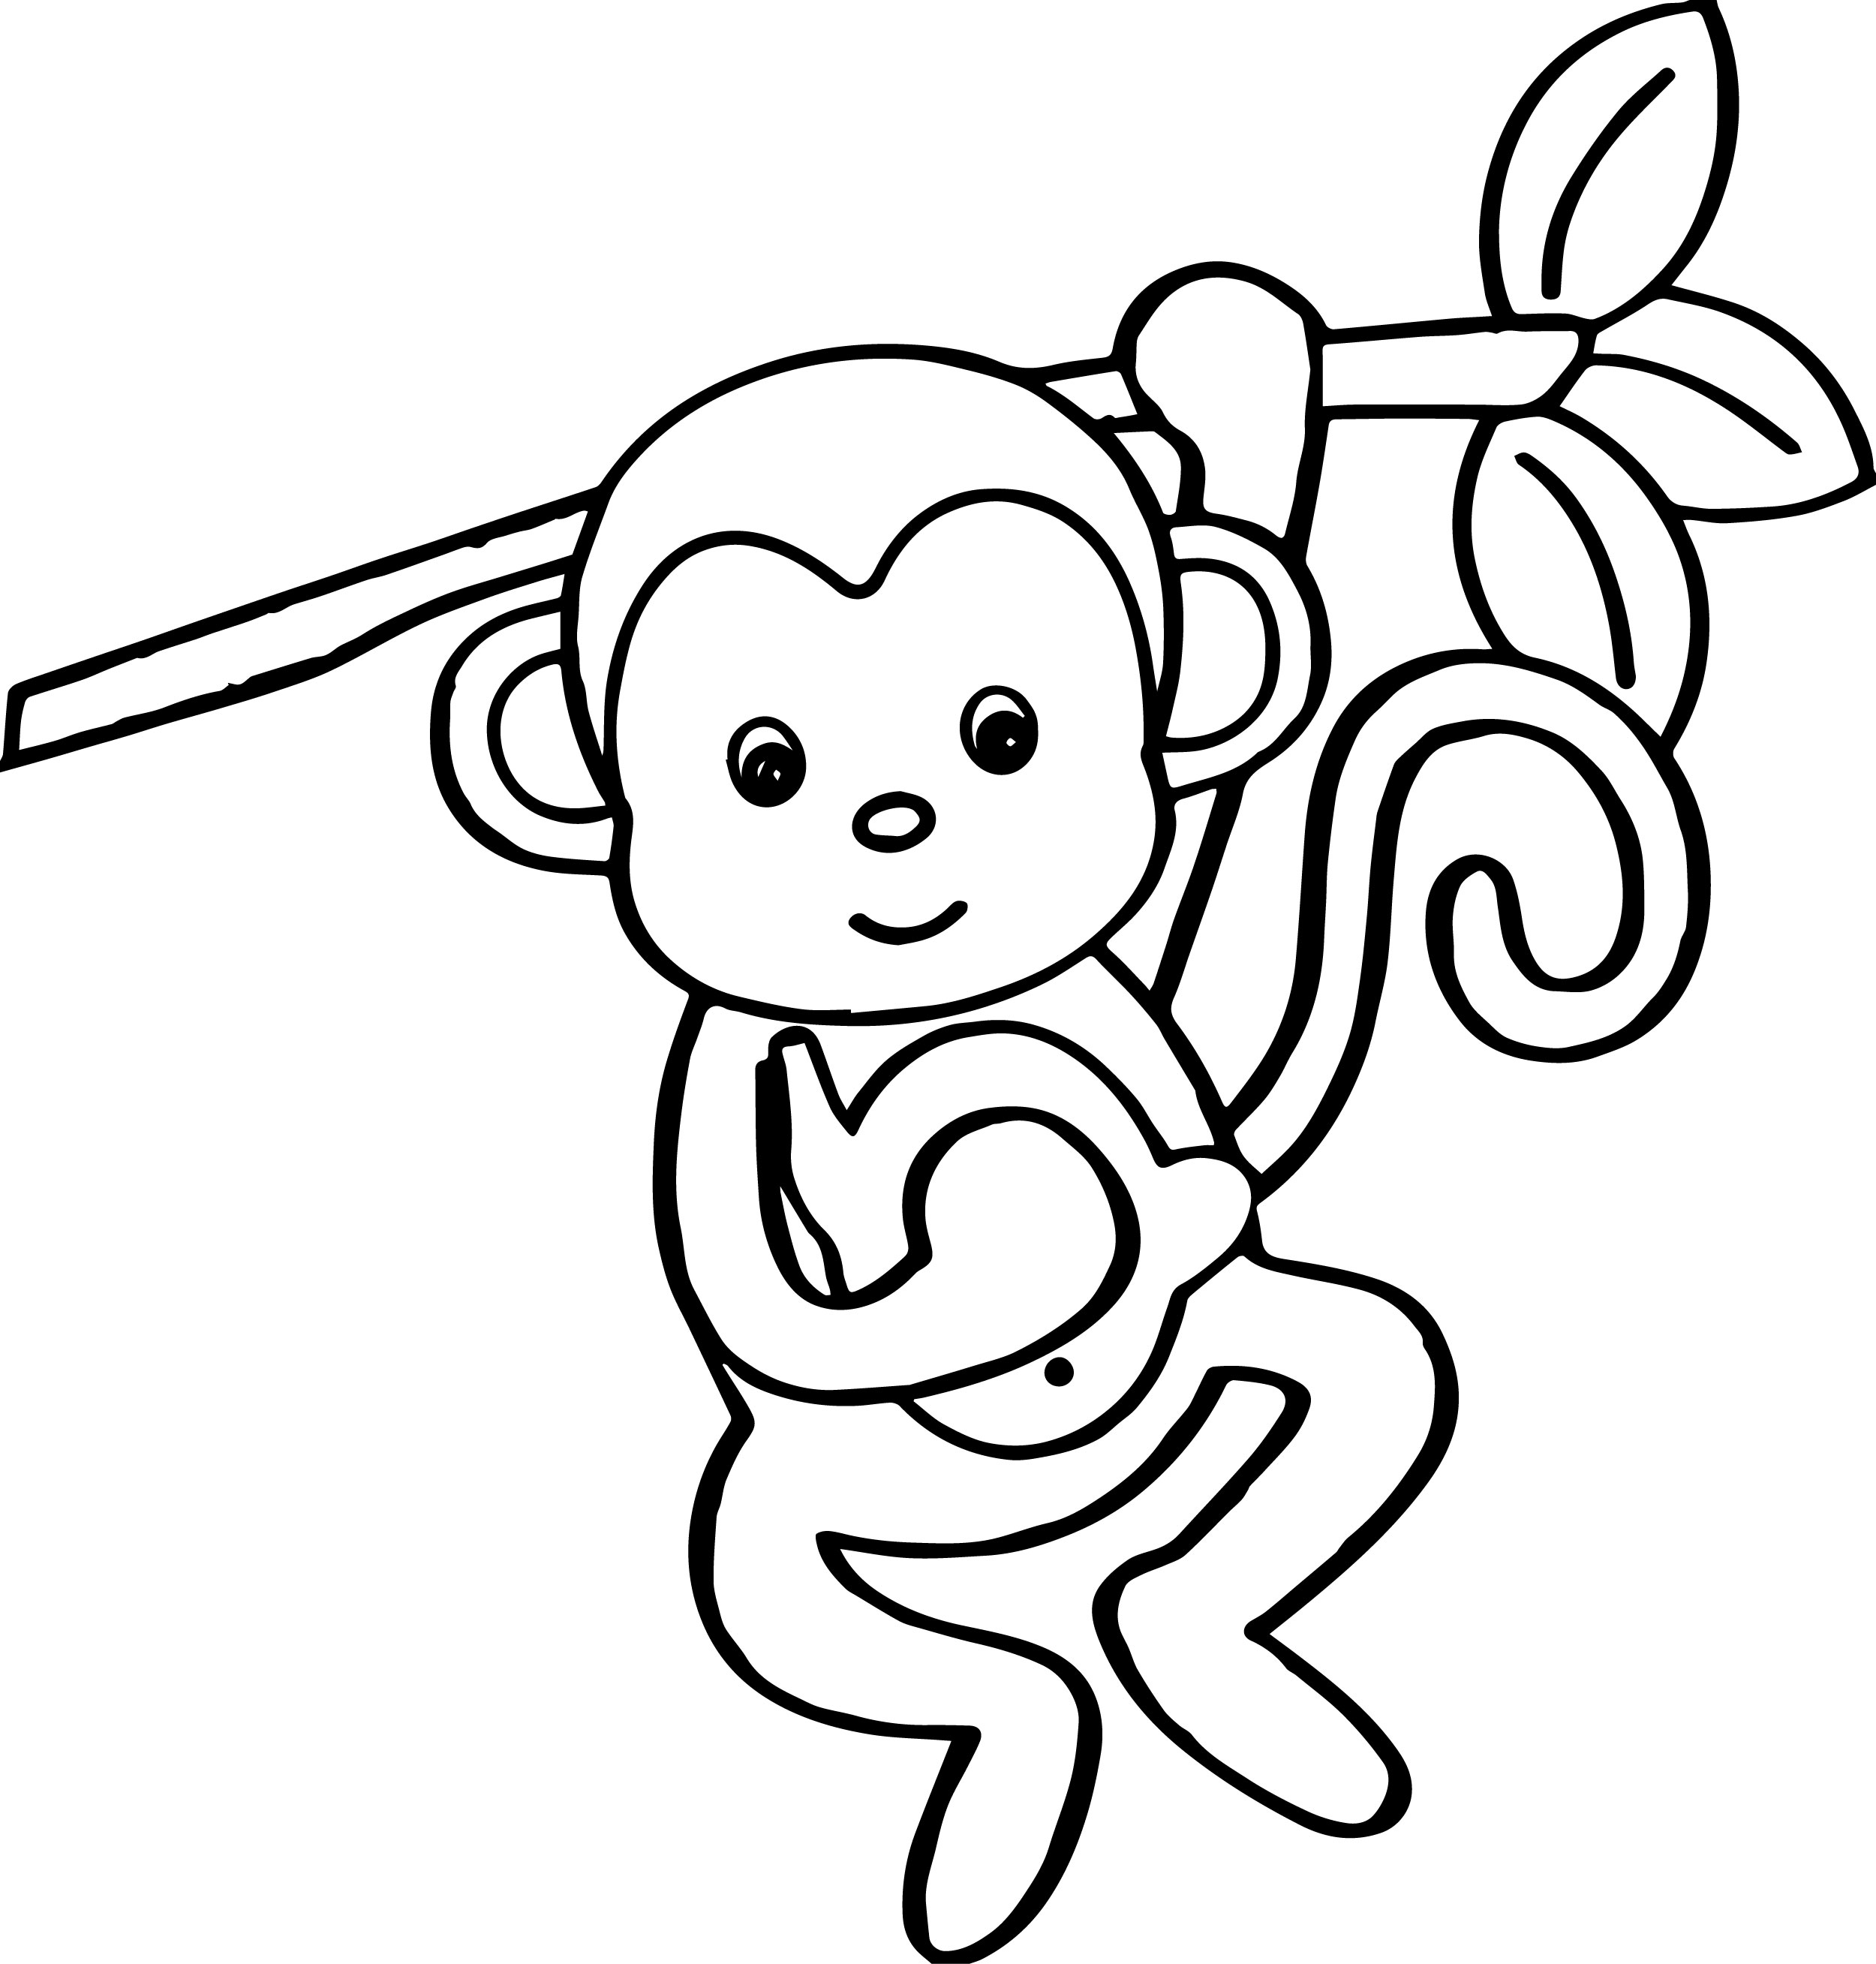 2500x2617 Coloring Pages Of Cute Baby Monkeys